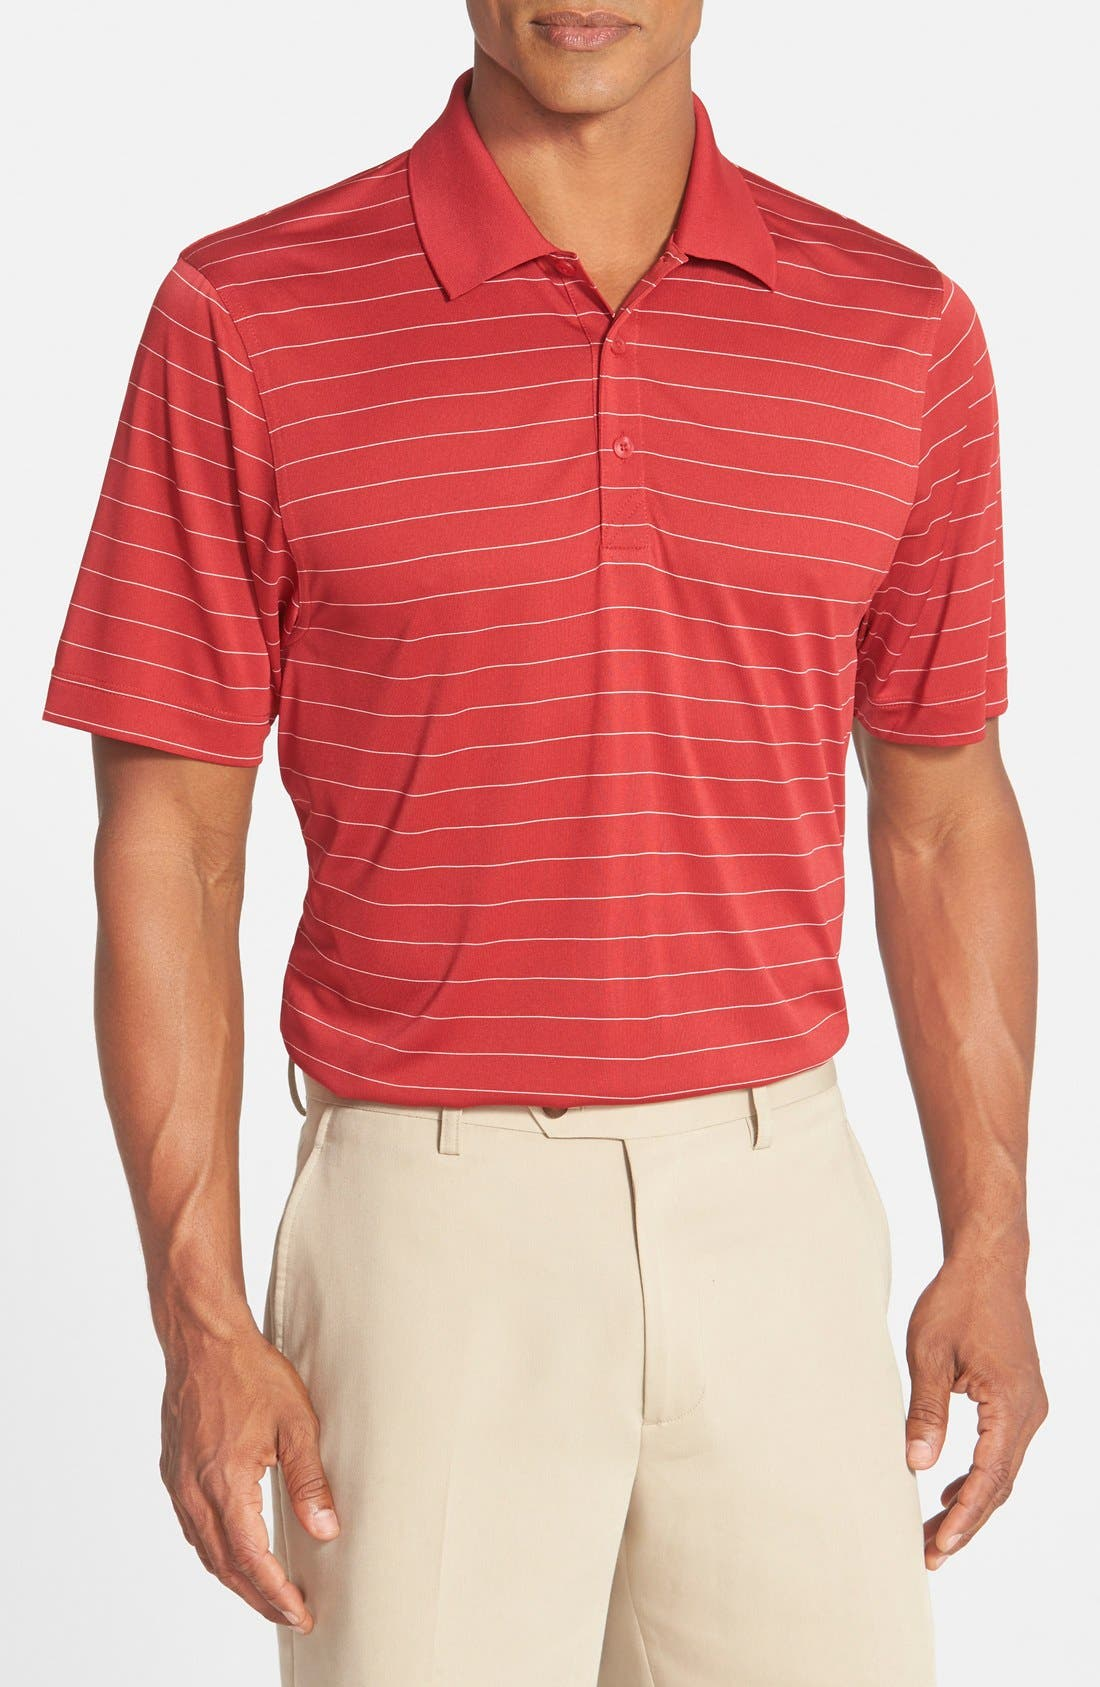 Franklin DryTec Polo,                         Main,                         color, Cardinal Red/ White